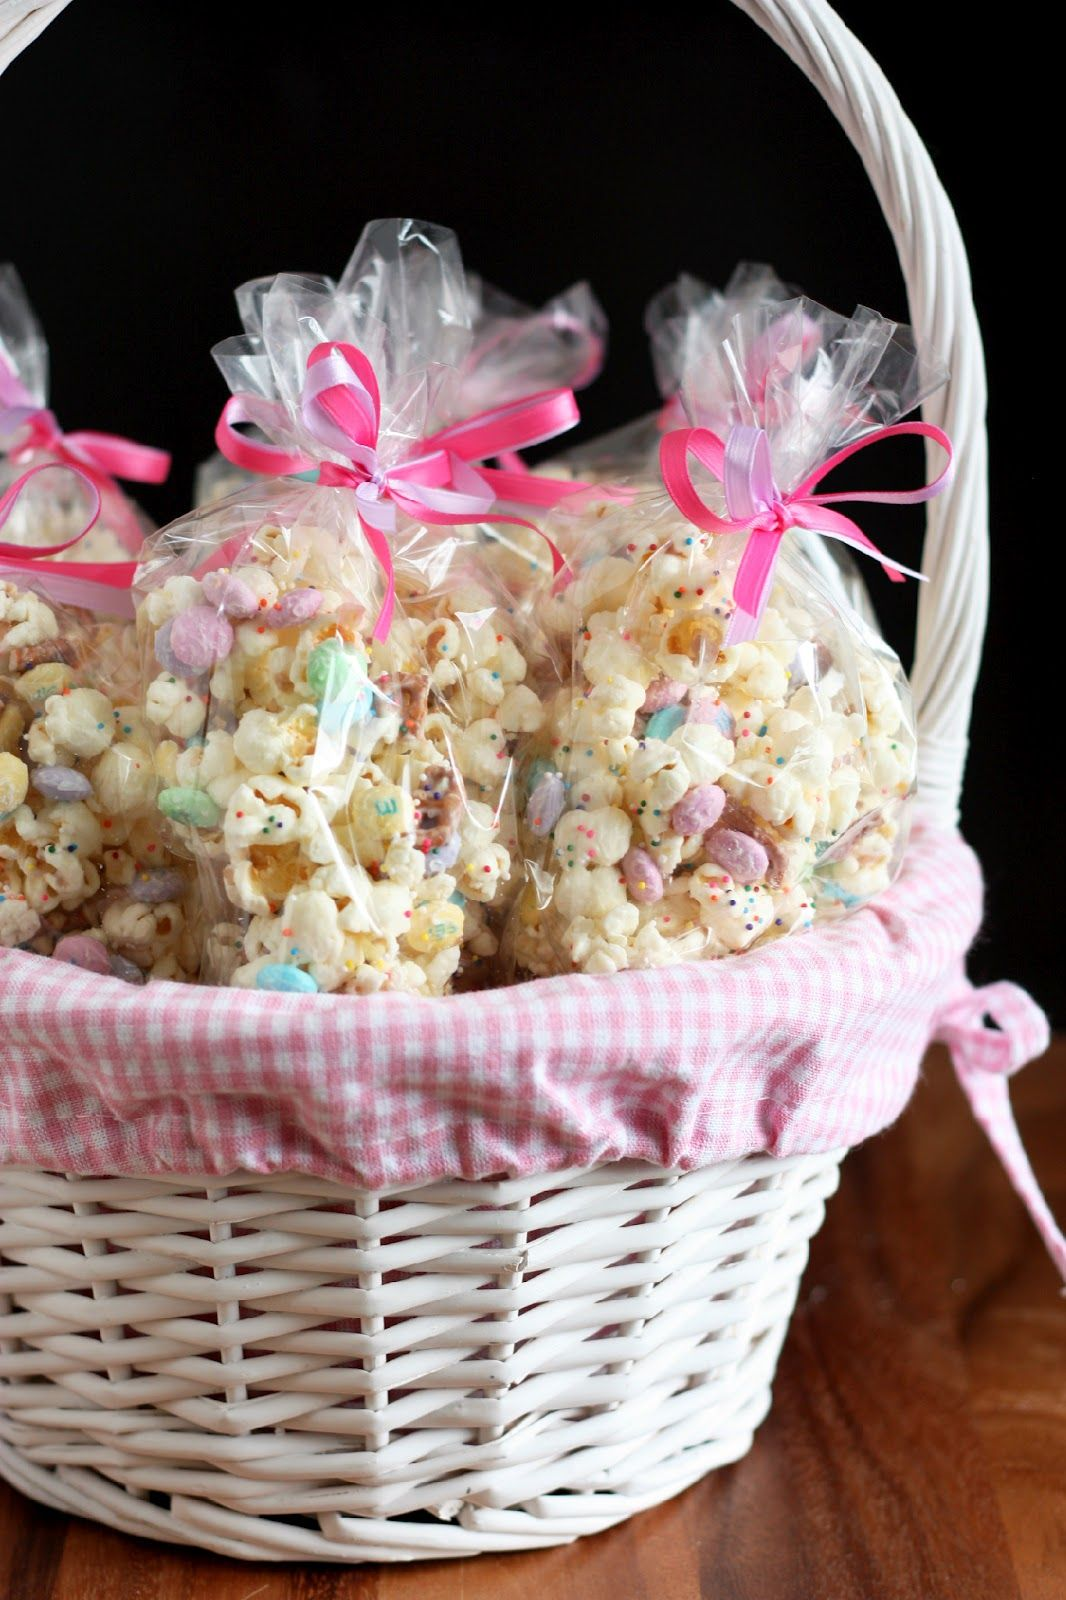 Funfetti popcorn or bunny bait for easter popcorn with white funfetti popcorn or bunny bait for easter popcorn with white chocolate pretzels ms and sprinklesstomize the colors for holidays or your party theme negle Gallery